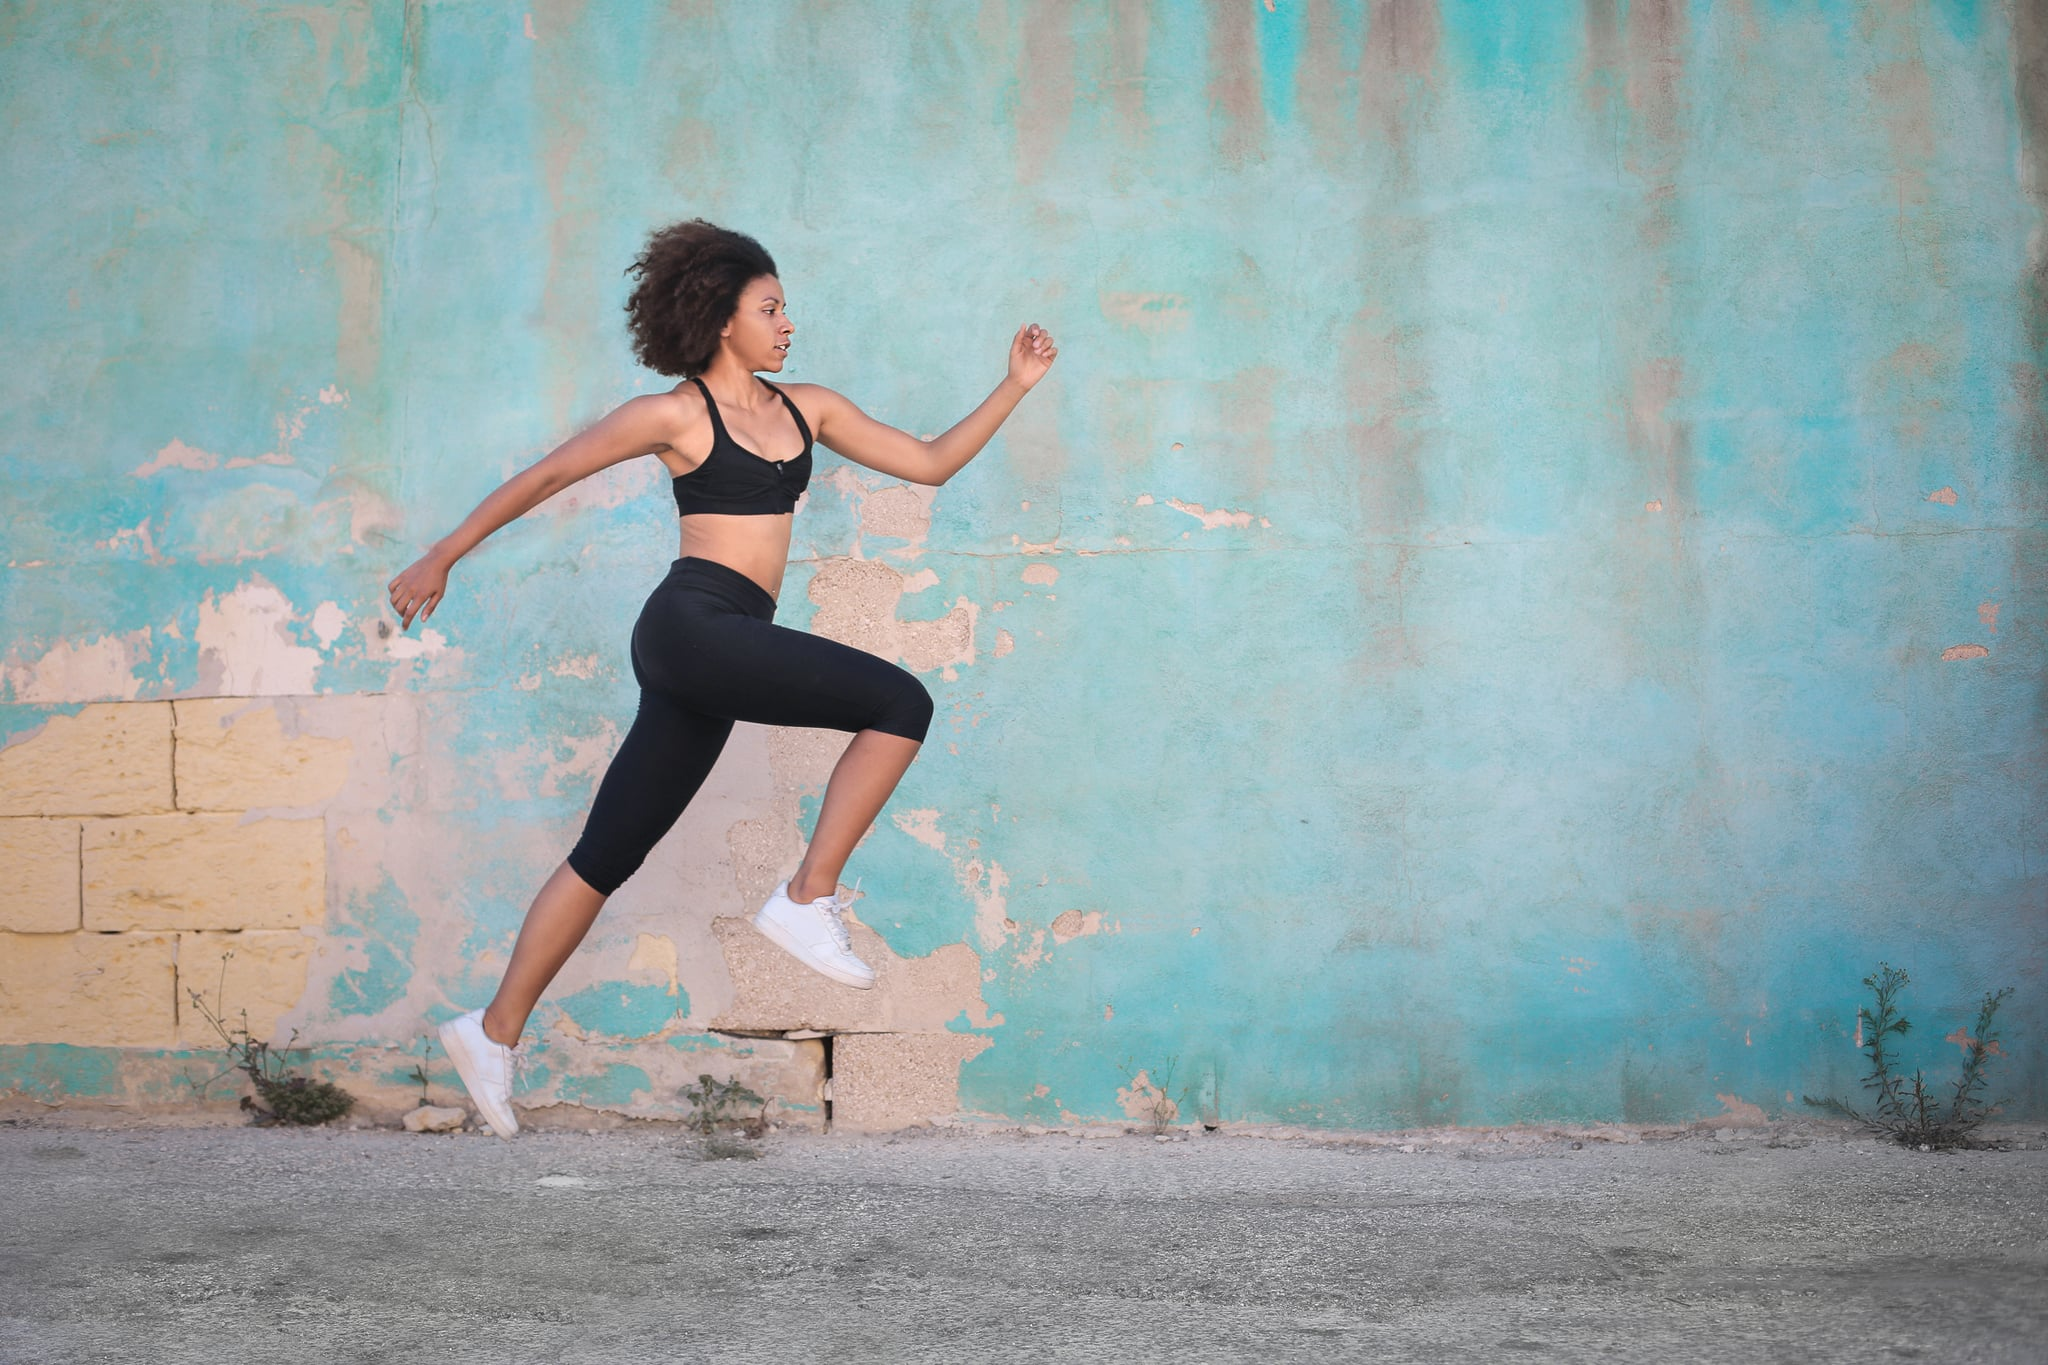 posture tips for running form